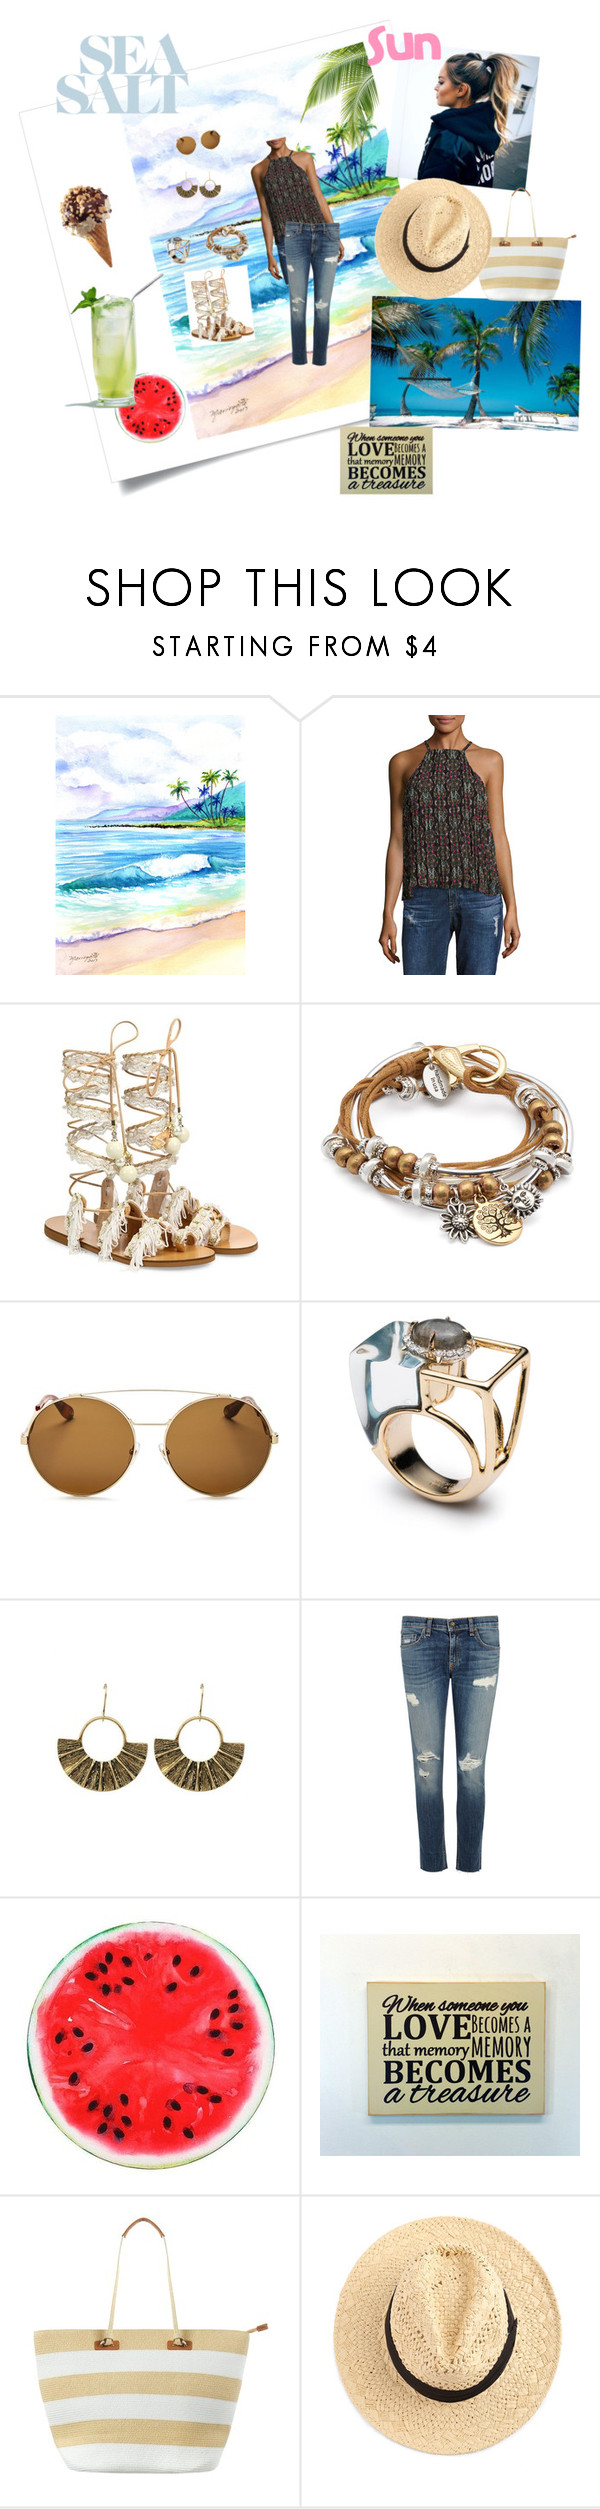 """Beach"" by fashionrx ❤ liked on Polyvore featuring Likely, Elina Linardaki, Lizzy James, Givenchy, Alexis Bittar, rag & bone/JEAN and Phase Eight"